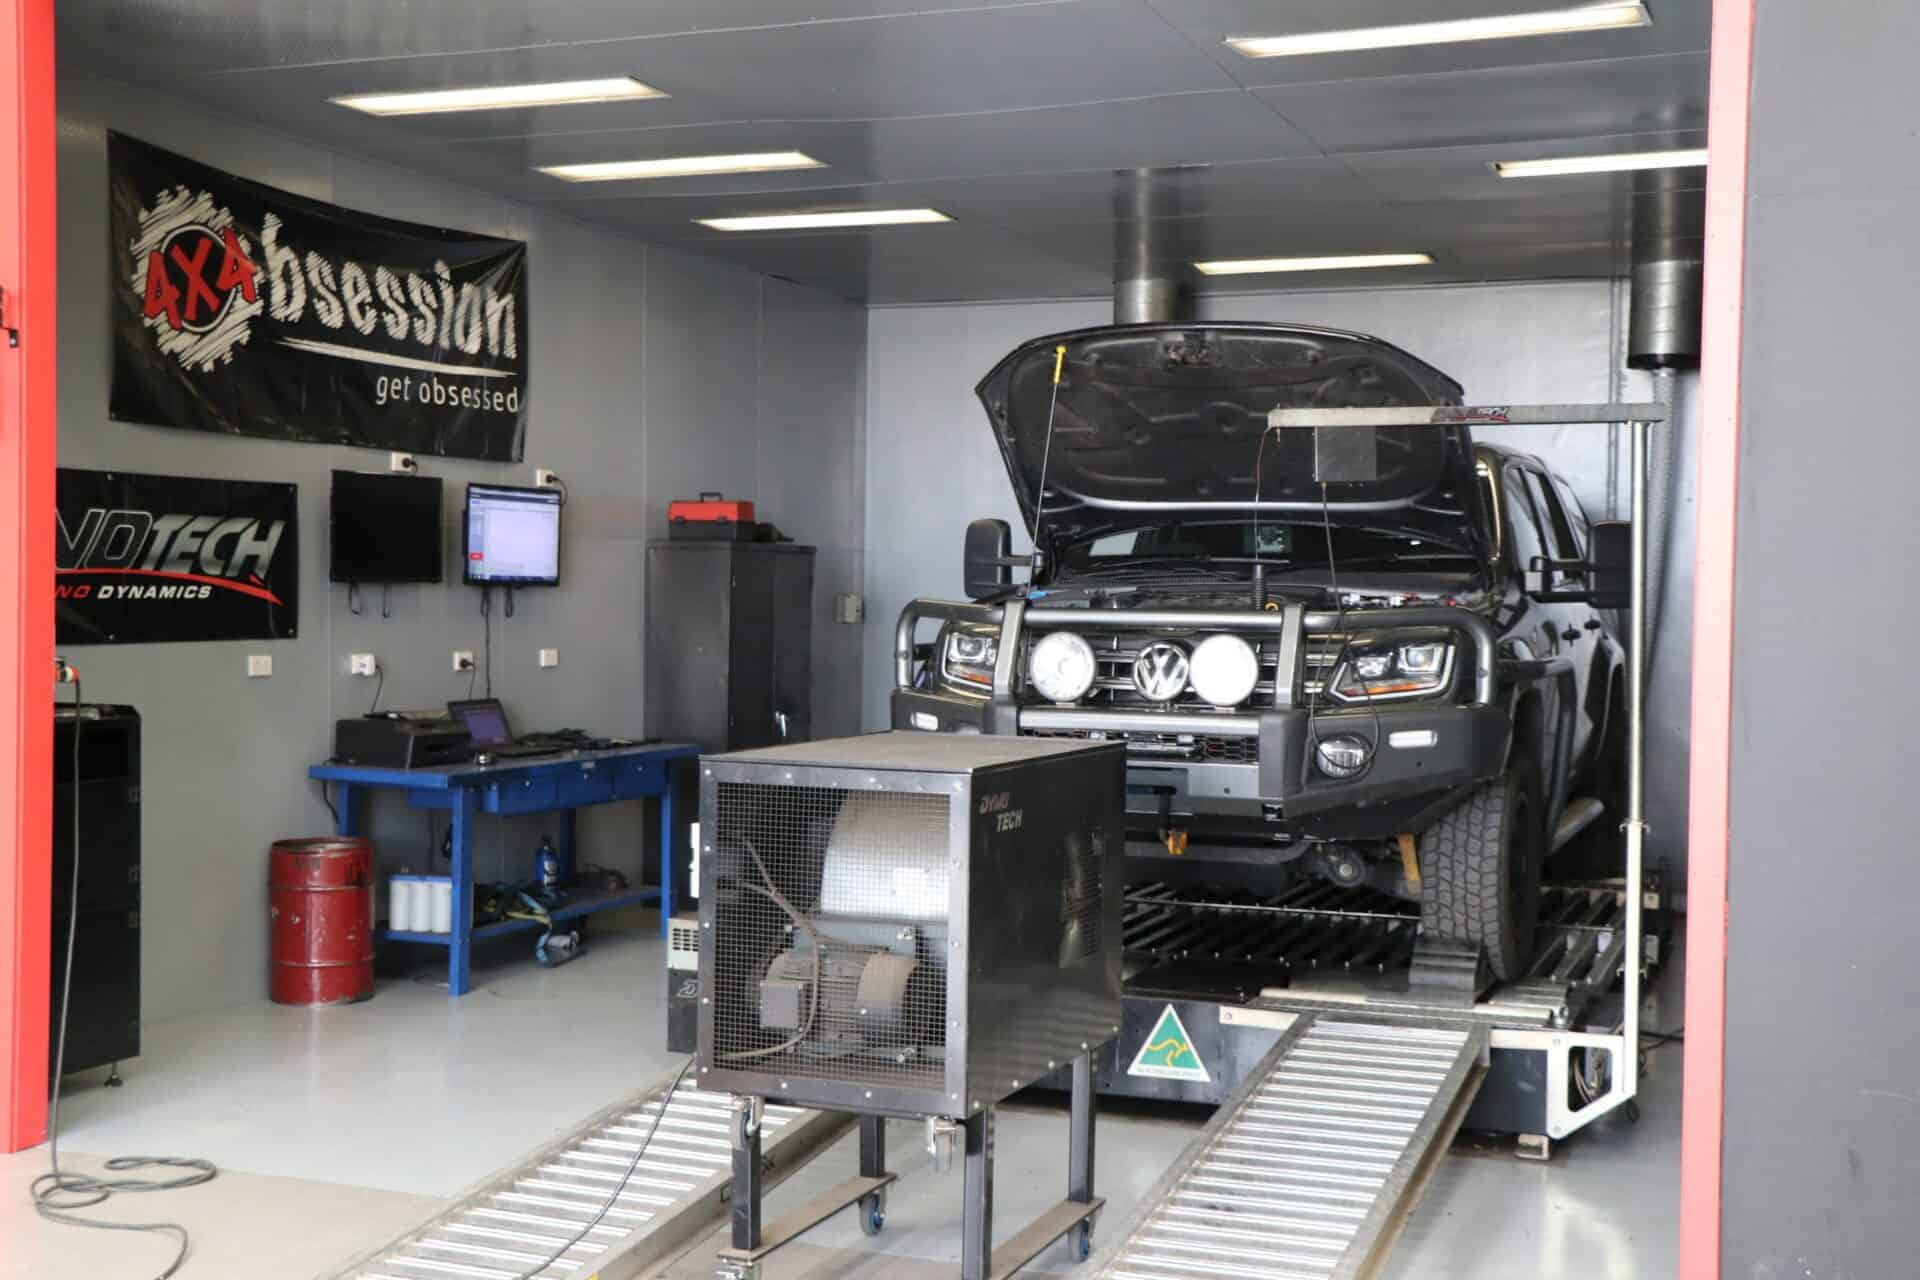 A 4WD under Dyno Tune Testing during a 4WD Performance Service | 4x4 Obsession, Melbourne